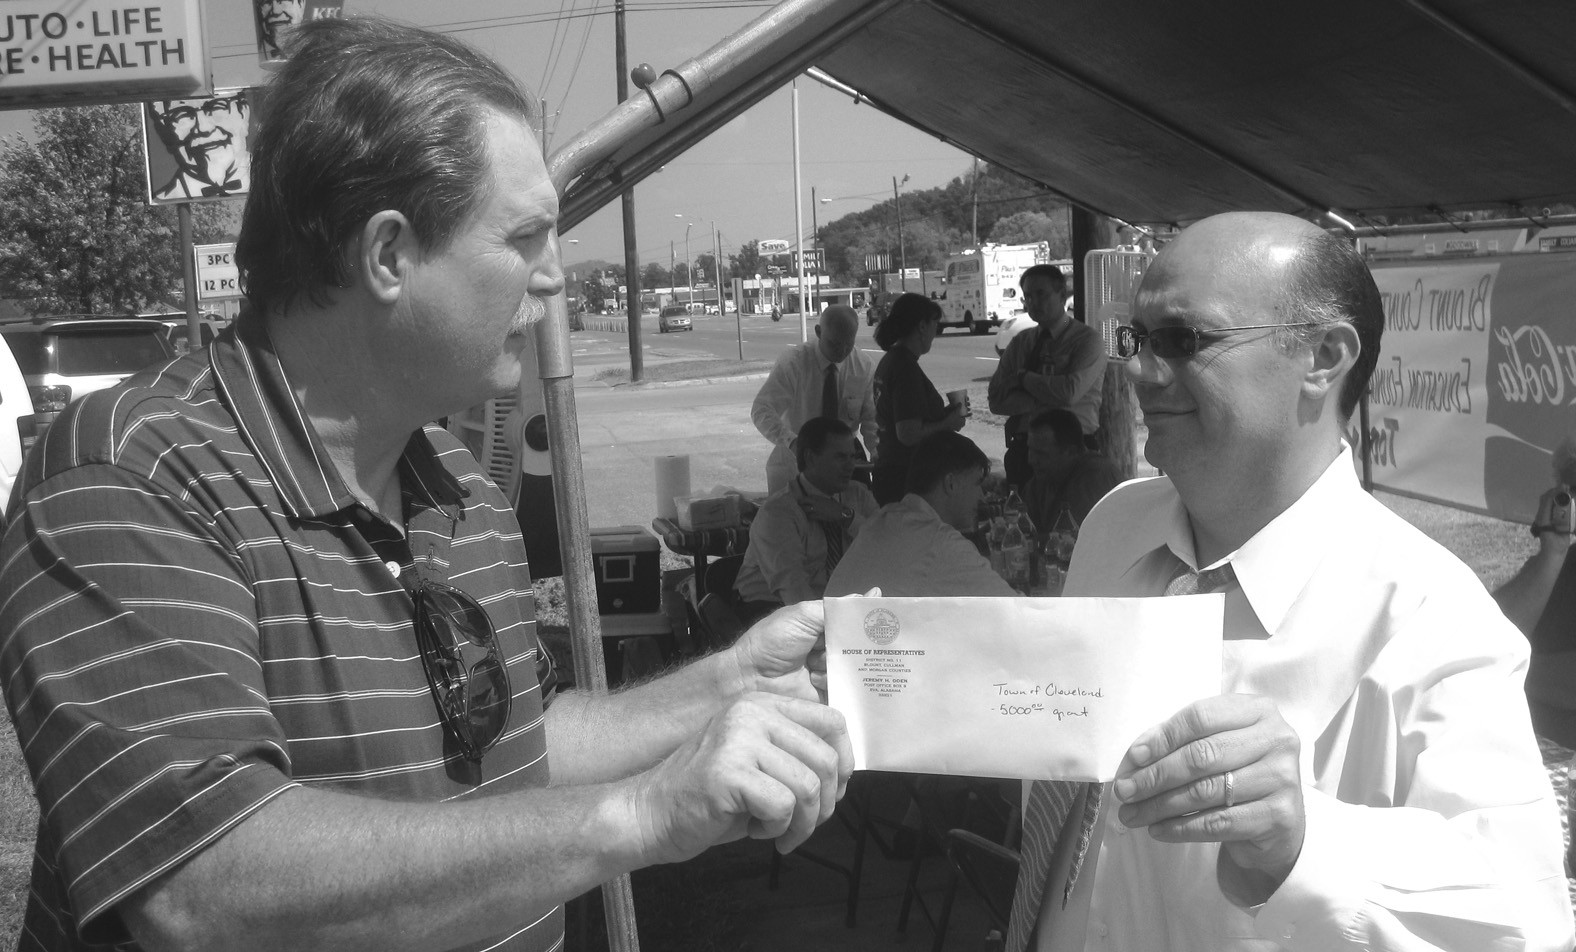 """Cleveland Mayor Jerry Jones (left) accepts a $5000 check from state Rep. Jeremy Oden, to be used to develop a dual-use youth football and soccer field in Cleveland. The field will be located just north of the city sewer plant on county road 1. Jones said excavation and site preparation work on the field will begin soon, with the aim of having the field ready for play by next spring or summer. """"We've got kids playing football and soccer on baseball fields, and that's certainly not ideal,"""" he said. """"This will give them a place of their own to practice and play,"""" he added. Oden said the money is a Community Service Grant from the state's general fund. Oden represents about a third of Blount County in a slice of territory lying along the northwest border, beginning at the Marshall County line and extending southwards to include both Blountsville and Cleveland. Both men were attending the Blount County Education Foundation radio-thon when the photo was taken. Jones is treasurer of the foundation and Oden is a regular supporter. – Ron Gholson"""